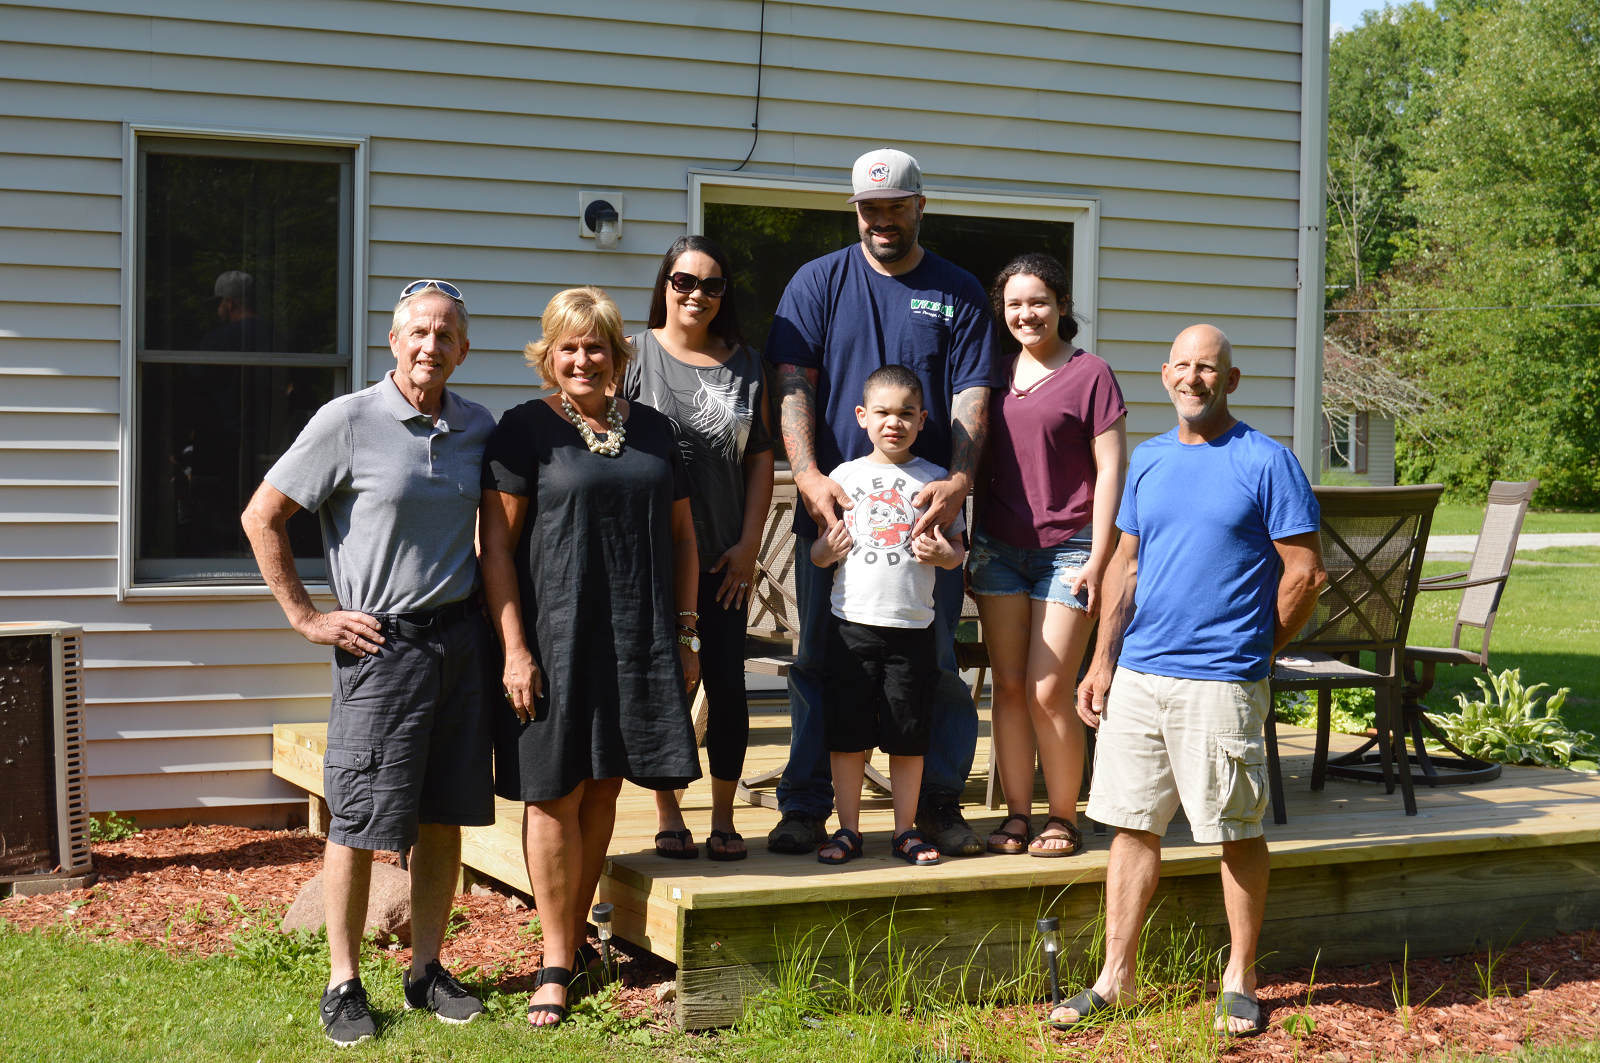 The Lenburg family along with Rebuilding Together Duneland volunteers on their new deck. ( left to right ) Jim Thorstad (Rebuilding Together Duneland Volunteer), Desila Rosetti (Porter County Community Foundation Board Member), Patty, Jim, Dylan & Hannah Lenburg, and Cliff Zosso (Rebuilding Together Duneland Volunteer).